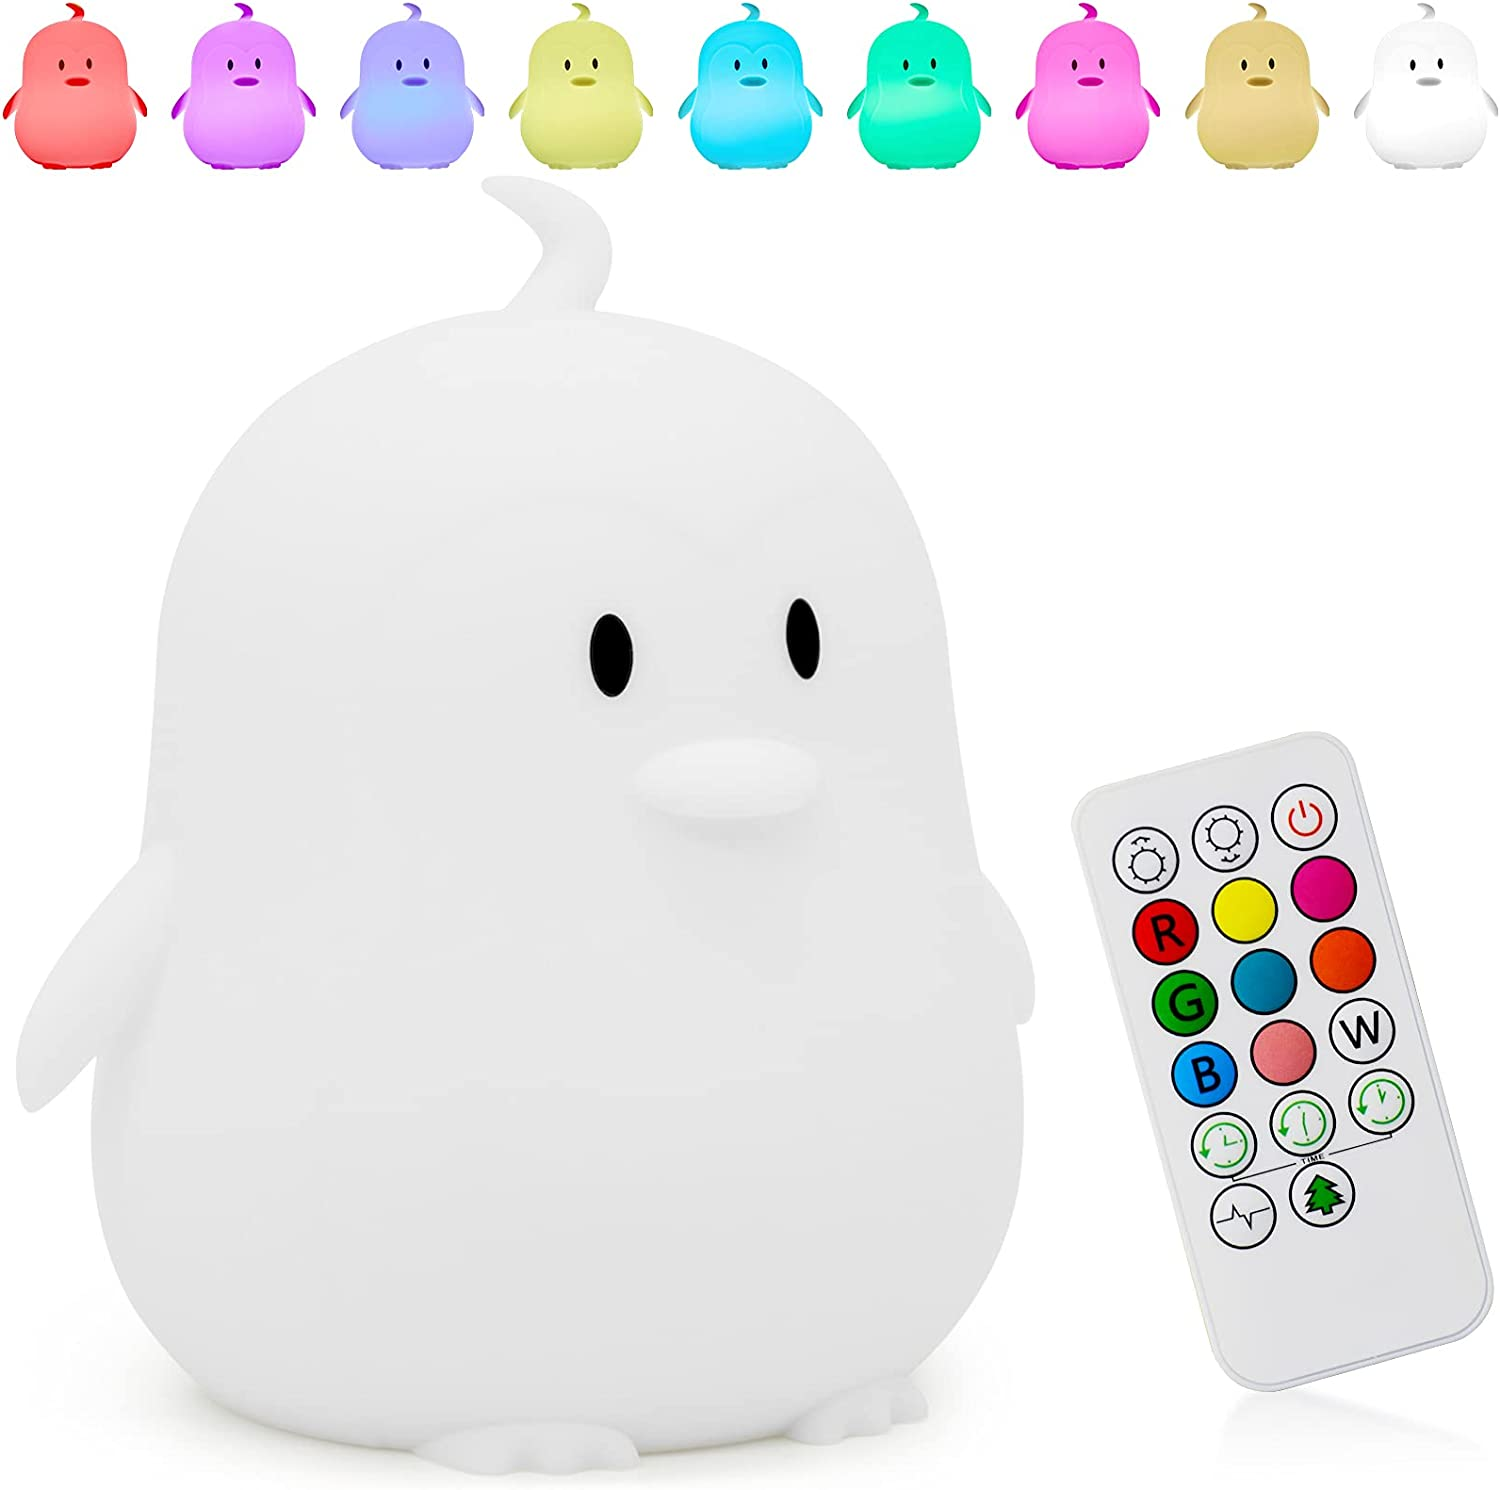 Cute Penguin Kids Night Light,Portable Changing Mode Multicolor Silicone Rechargeable Animal Led Boy Nightlight,Baby Birthday Gift Mom Teenage Girl Nursery Squishy Night Lamp Children Kawii Room Decor